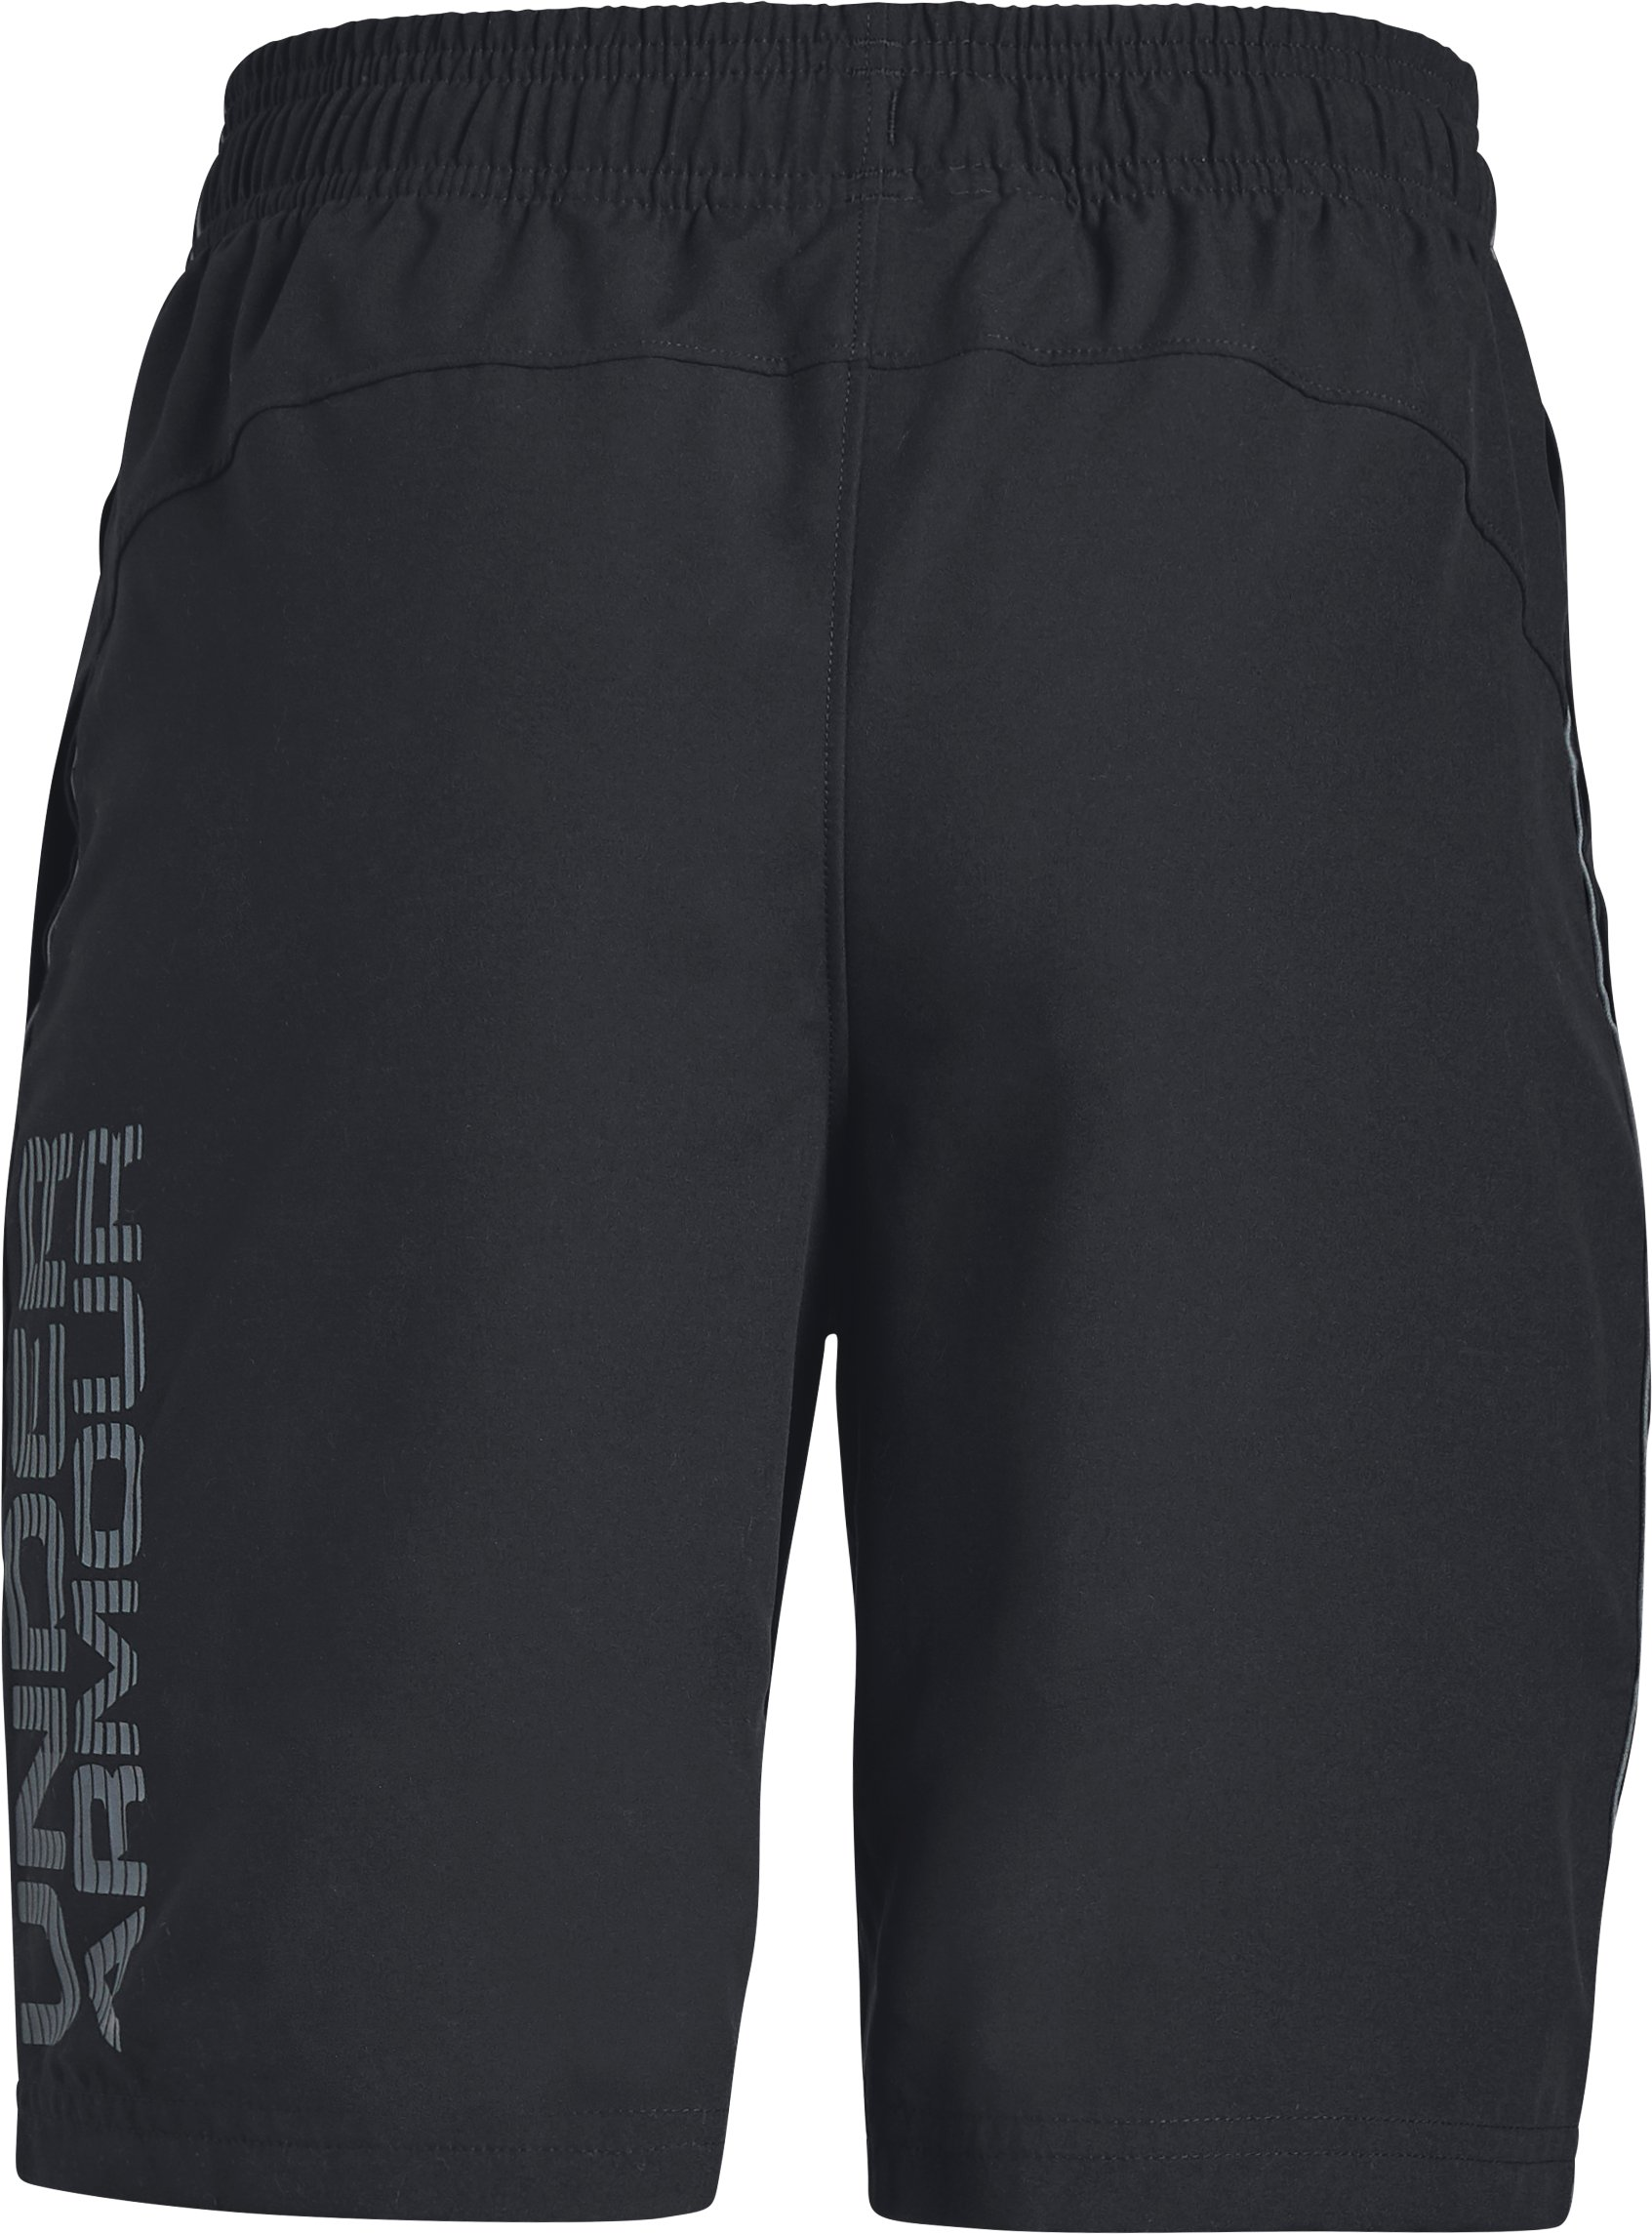 Boys' UA Woven Graphic Shorts, Black ,